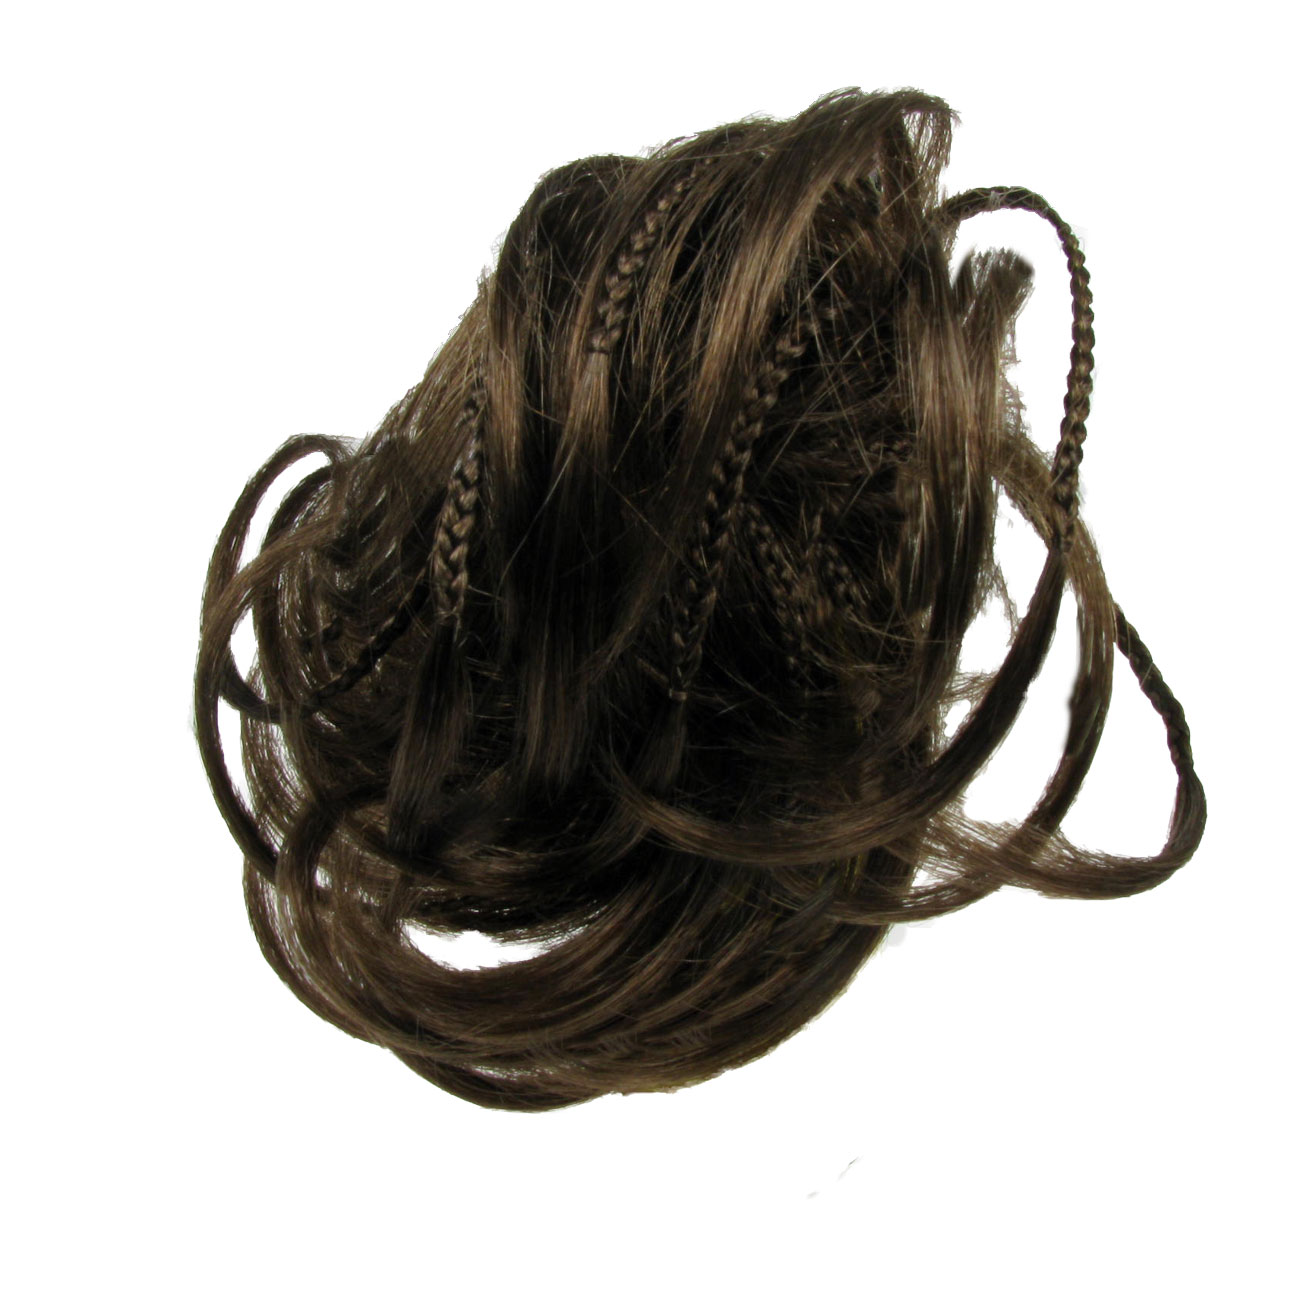 Elasticated Band Hair Piece Extensions - Golden Brown Plaited Bun Scrunchie Enlarged Preview